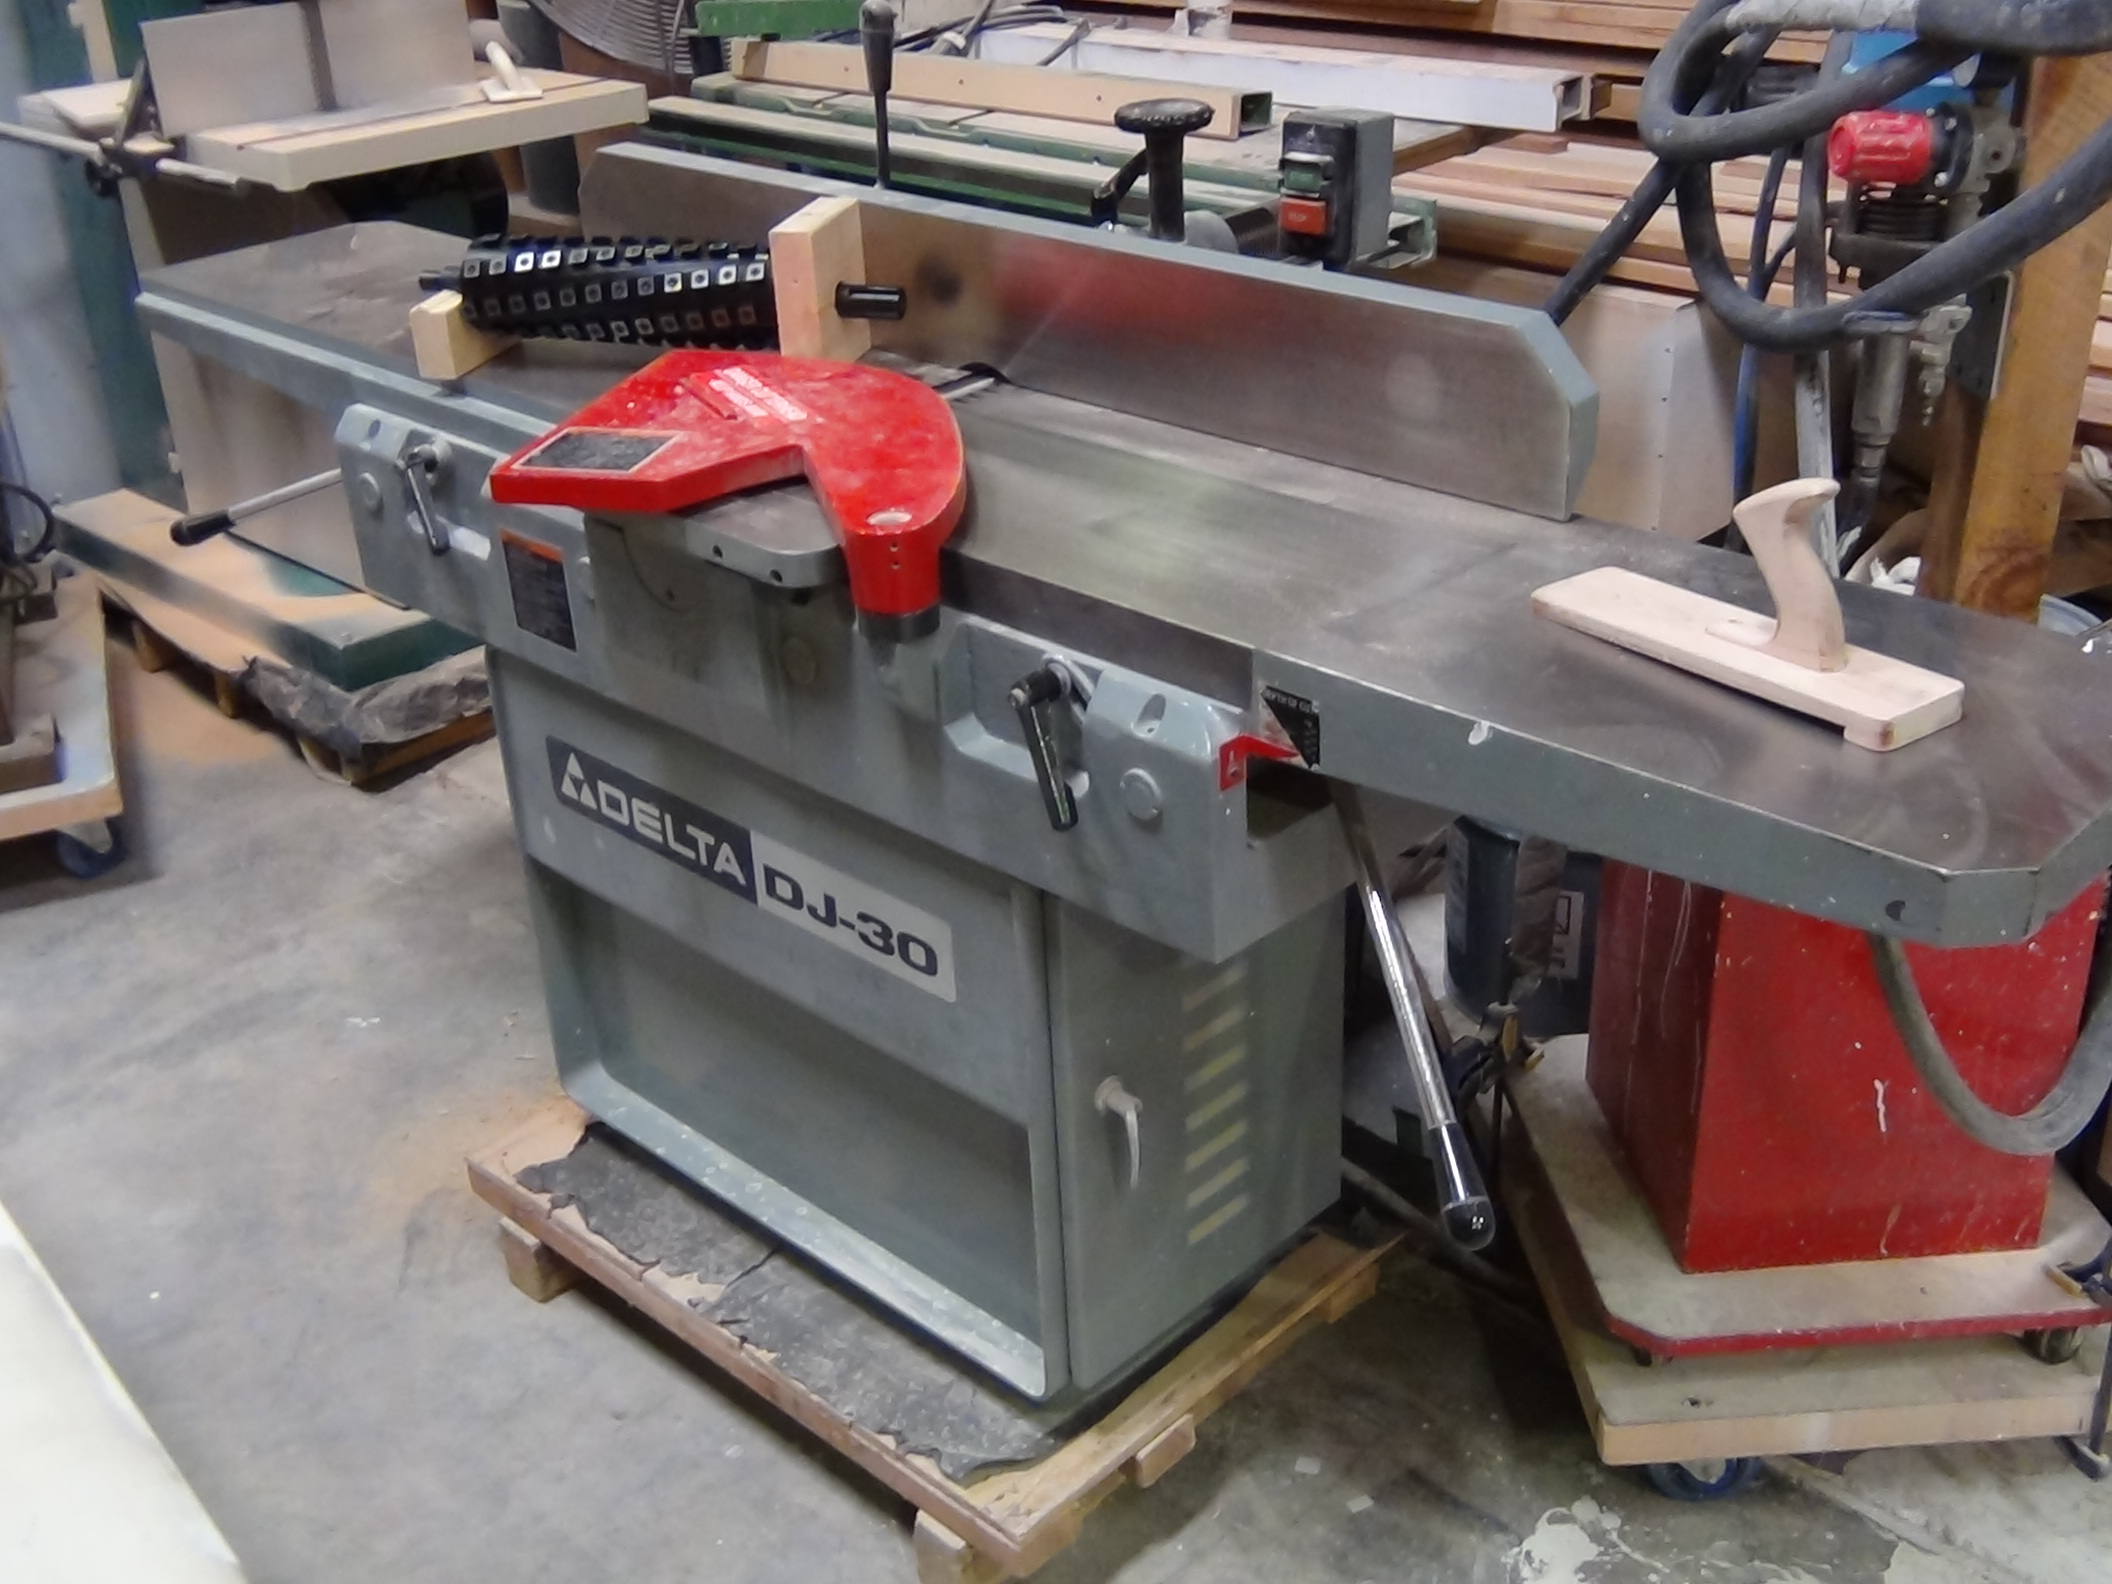 Dj 20 Jointer For Sale